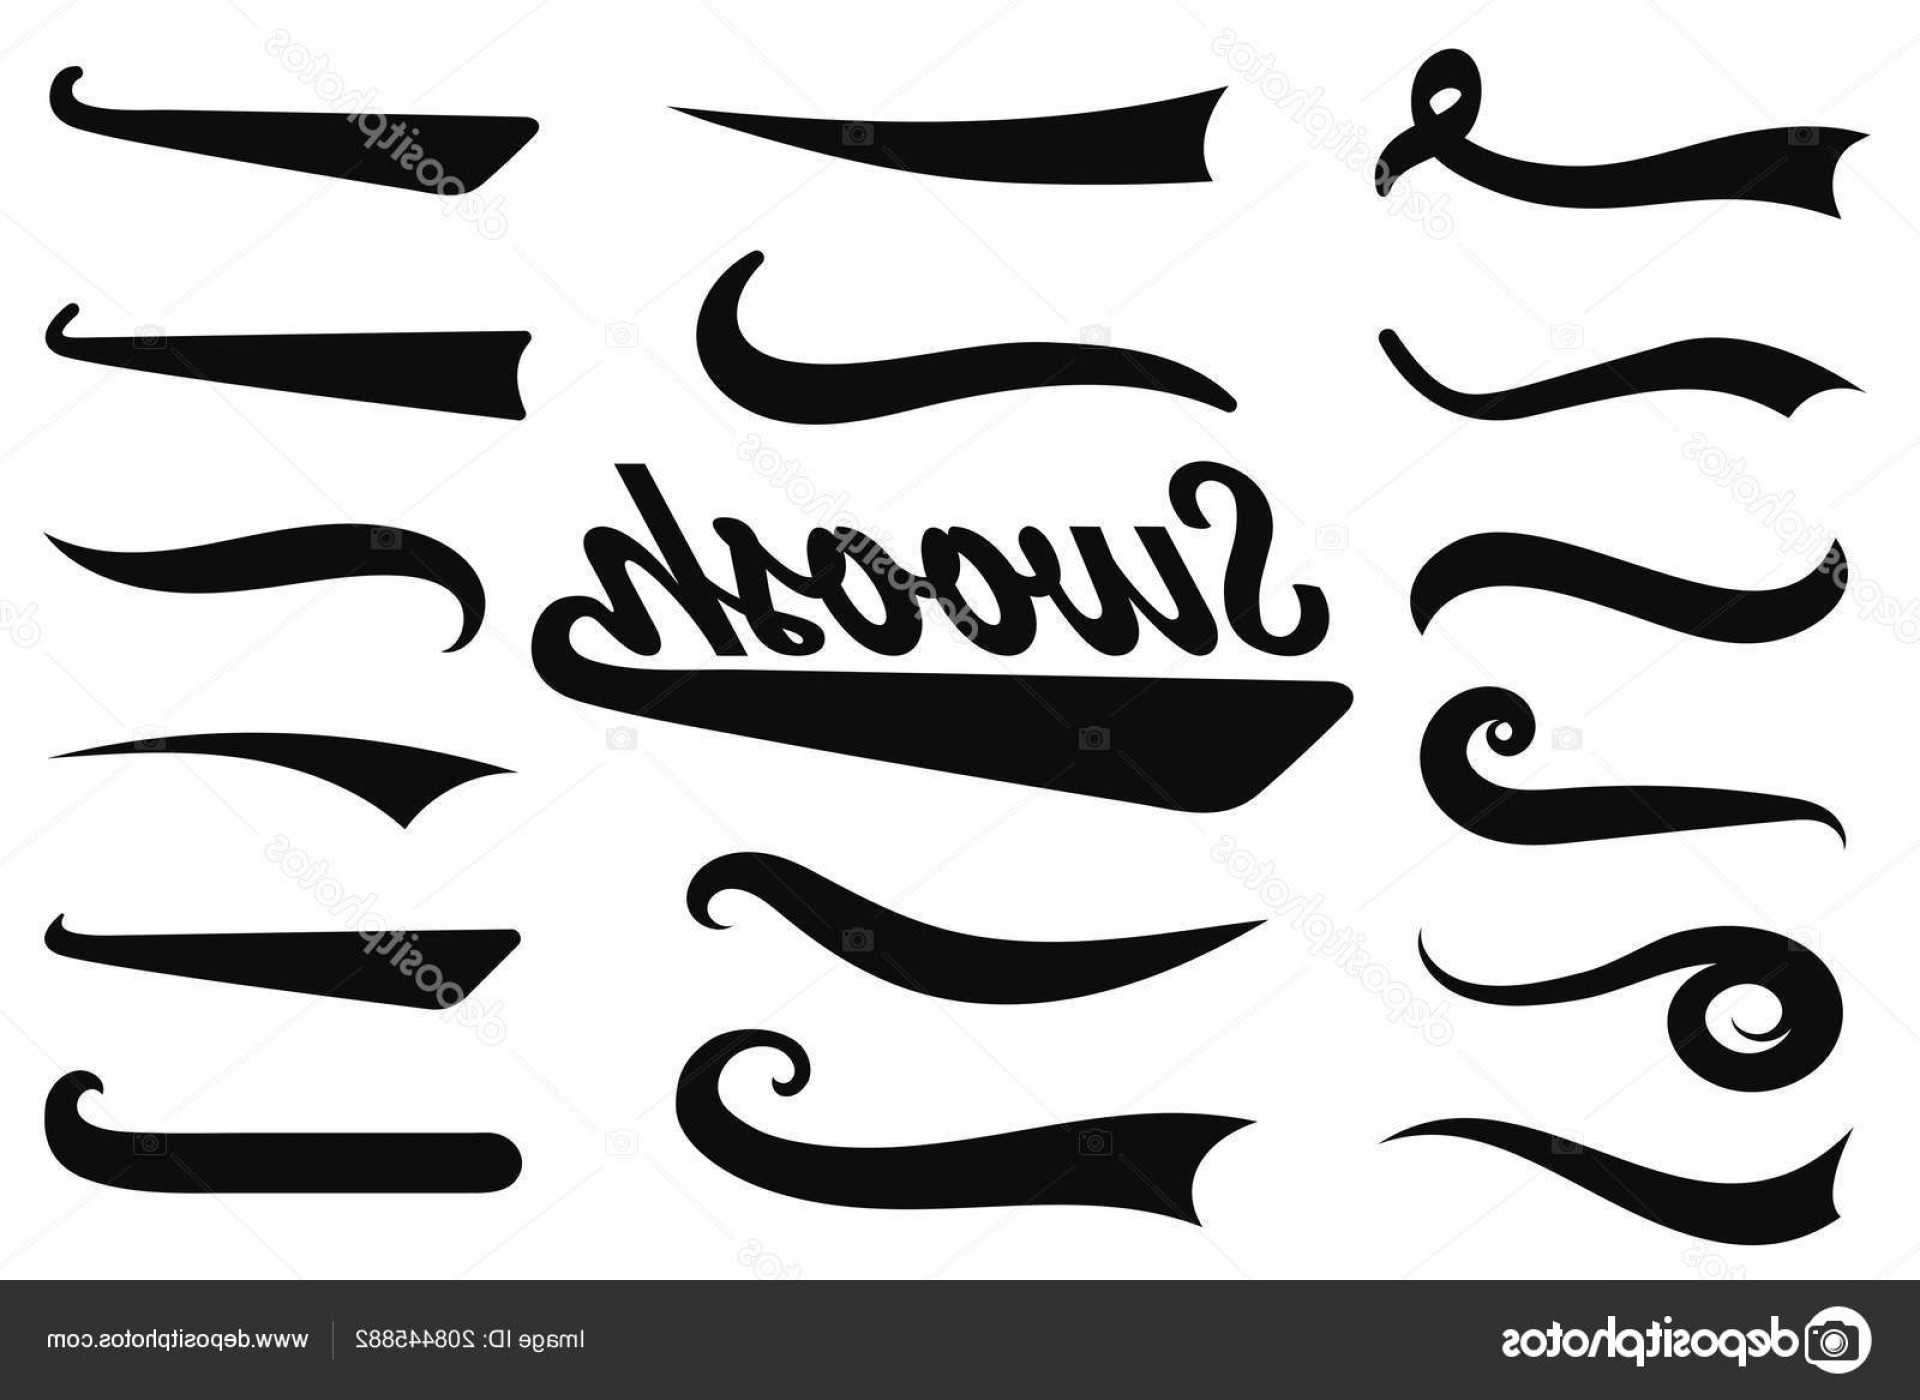 Baseball Swoosh Vector At Getdrawings